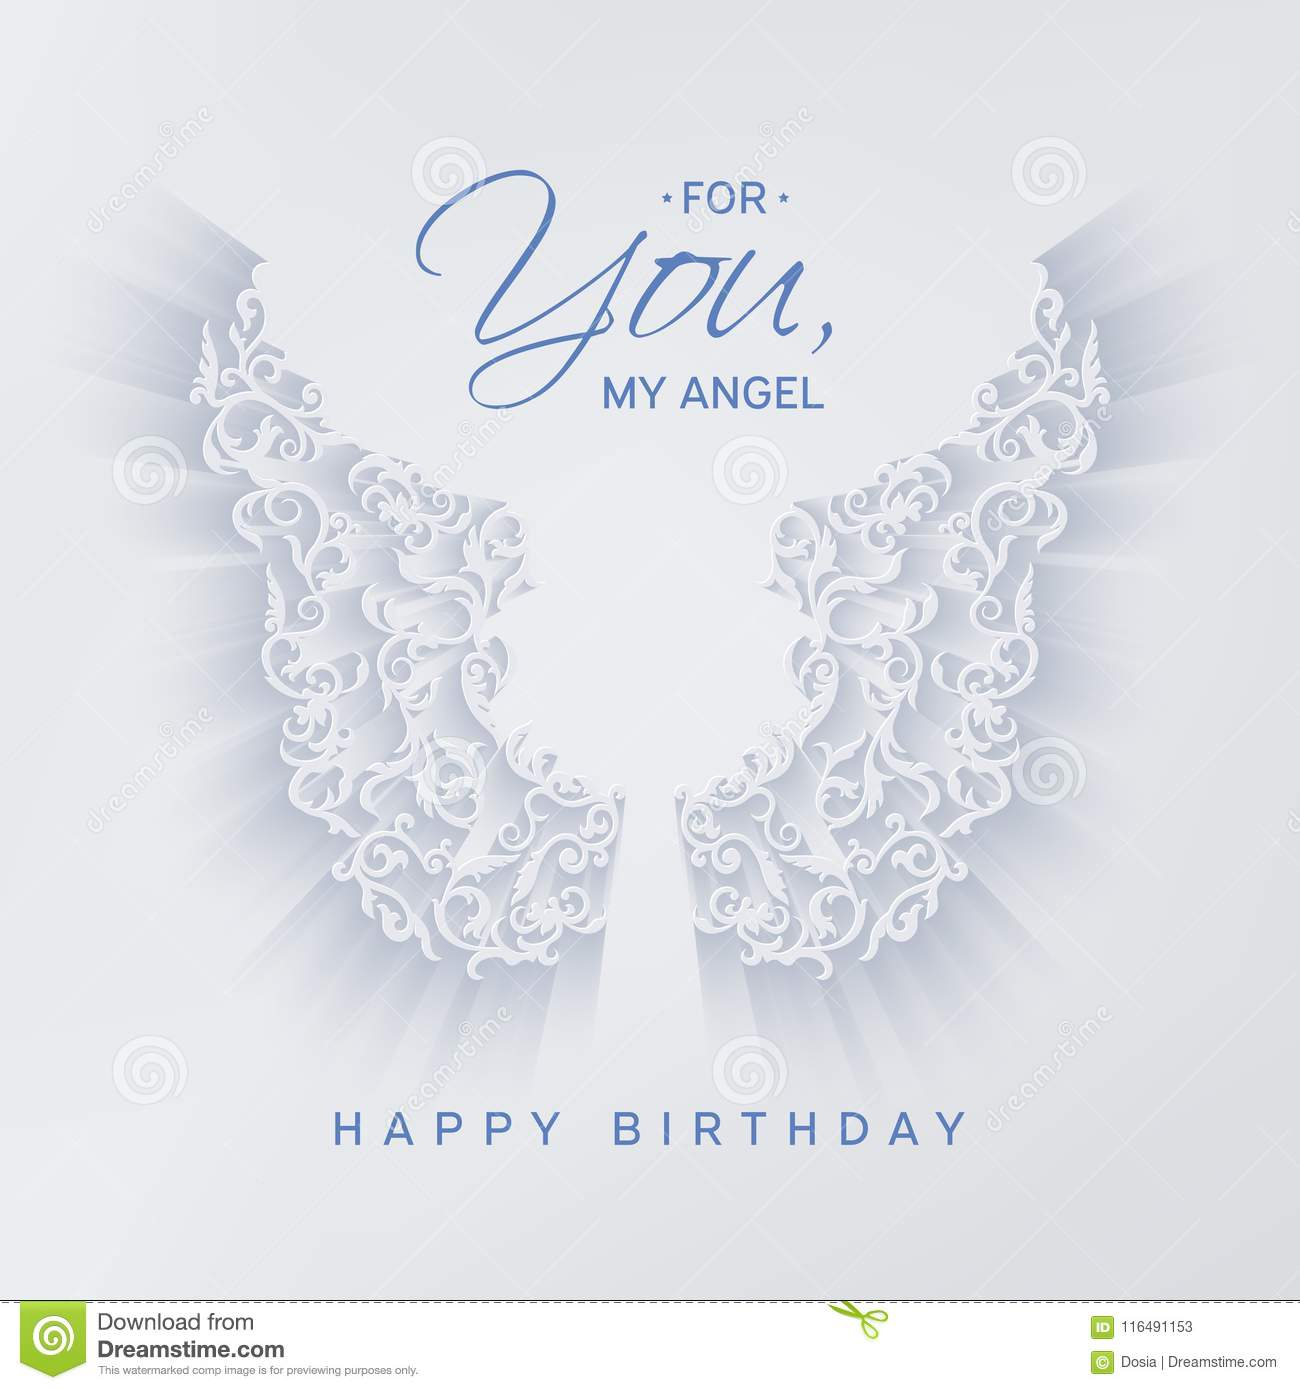 Happy birthday card with angel wings stock vector illustration of white beautiful angel ornamental wings on a light background outline decor with shadow congratulation text for you my angel happy birthday greeting m4hsunfo